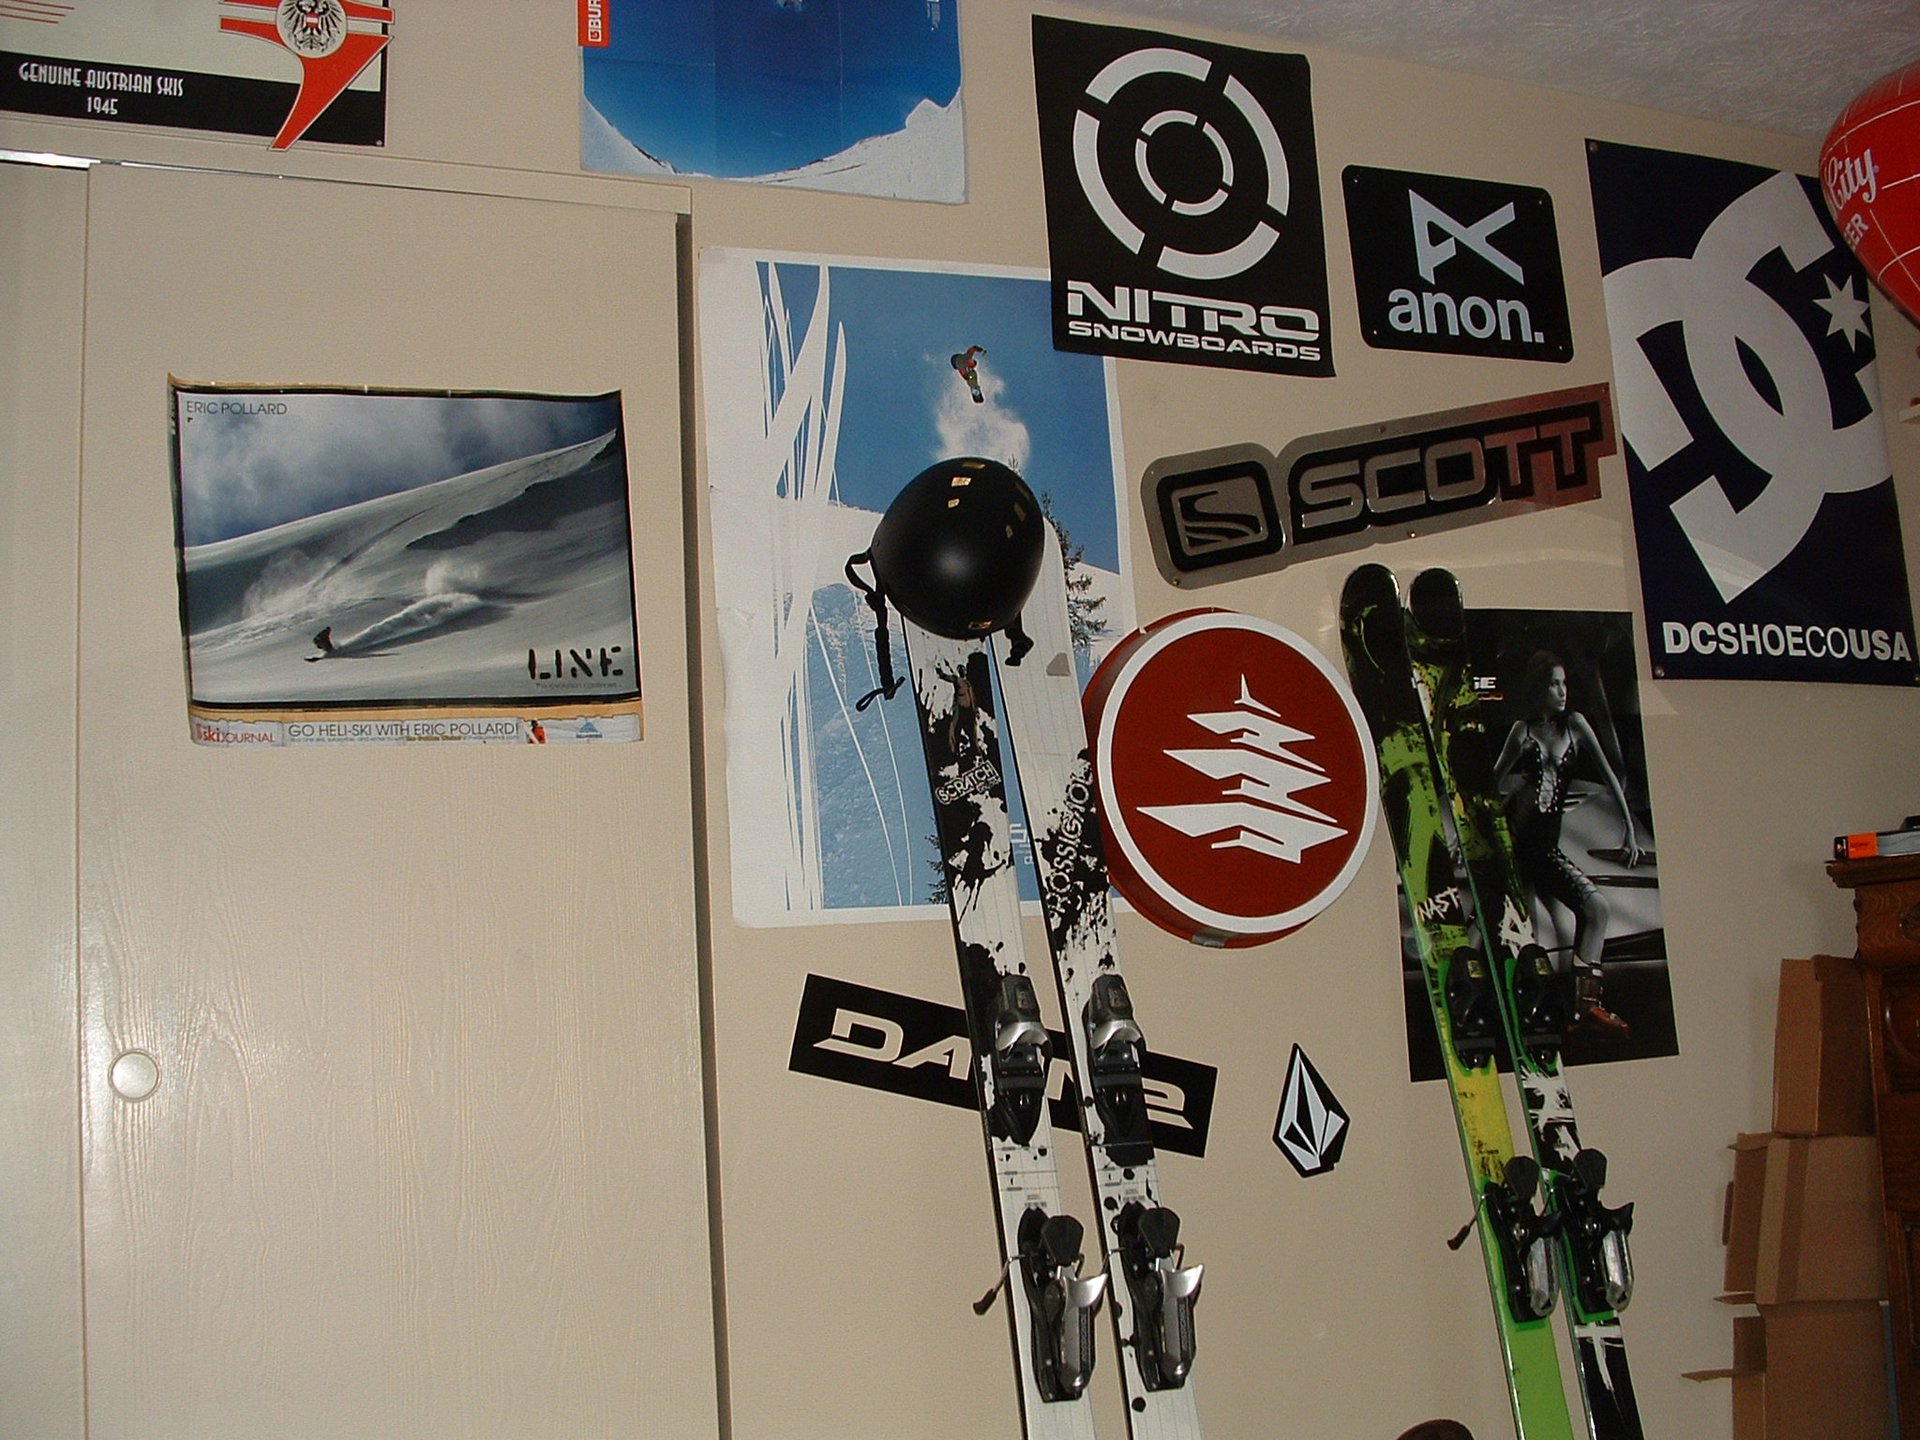 Skis and posters